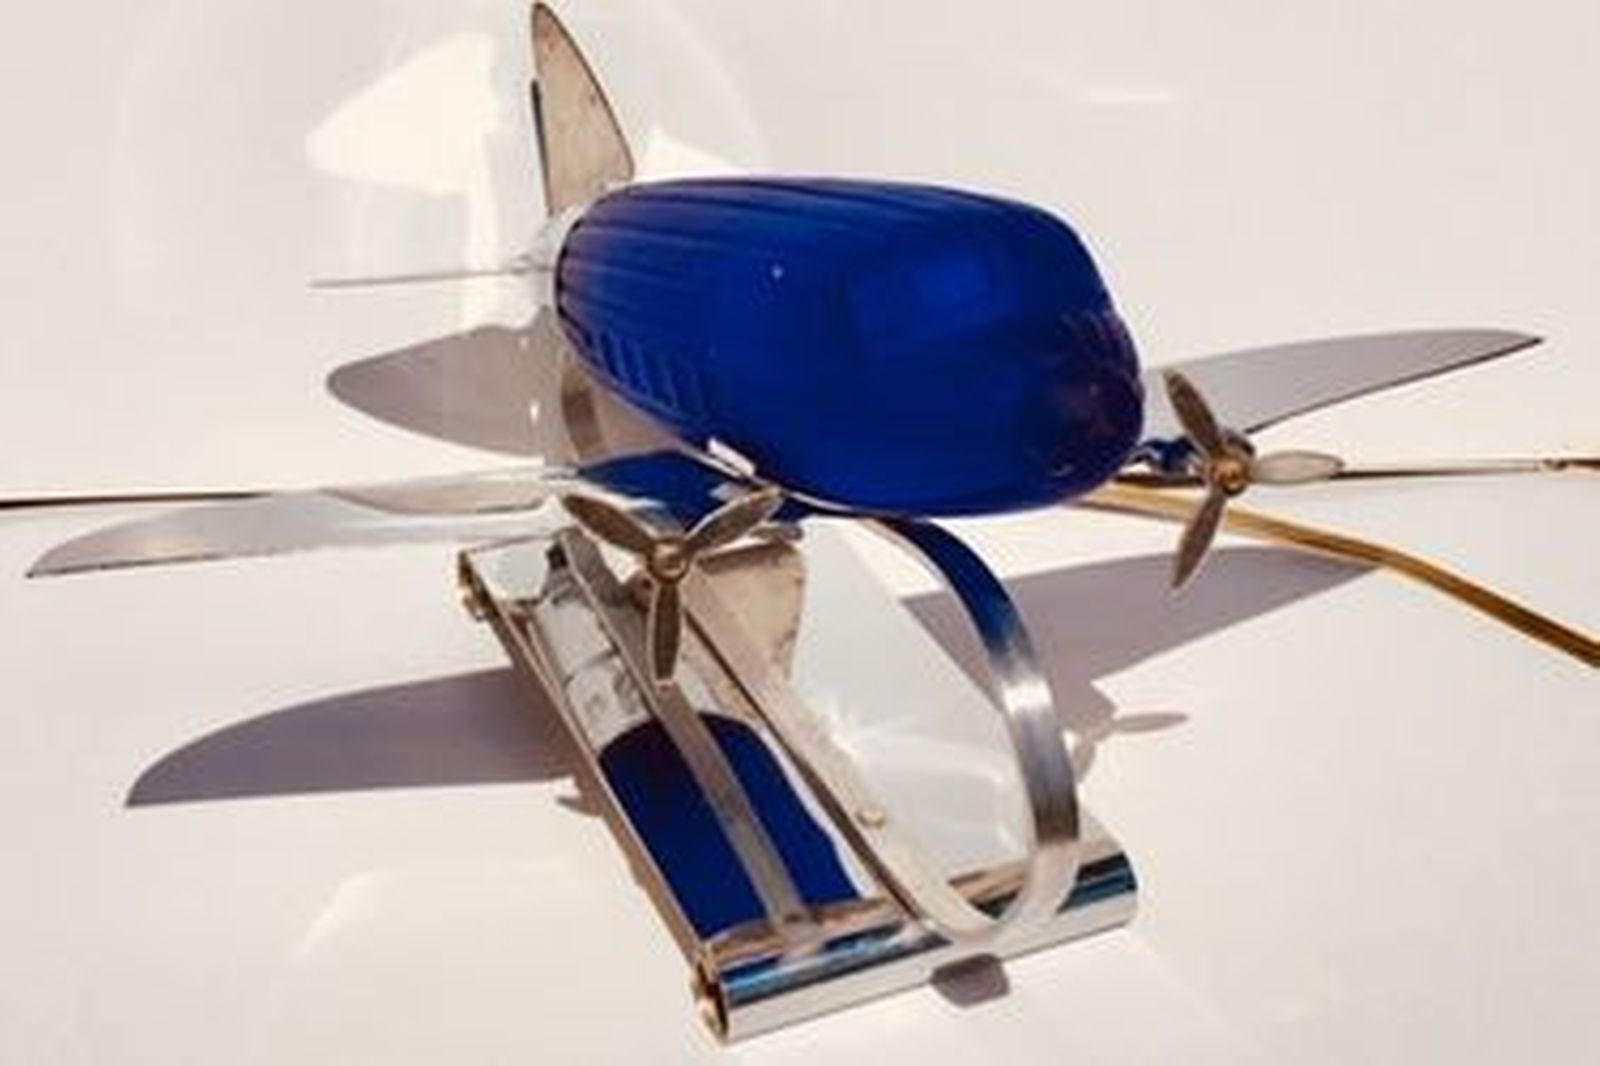 Genuine Art Deco DC3 Lamp available with either white or Blue cobalt Blue shade